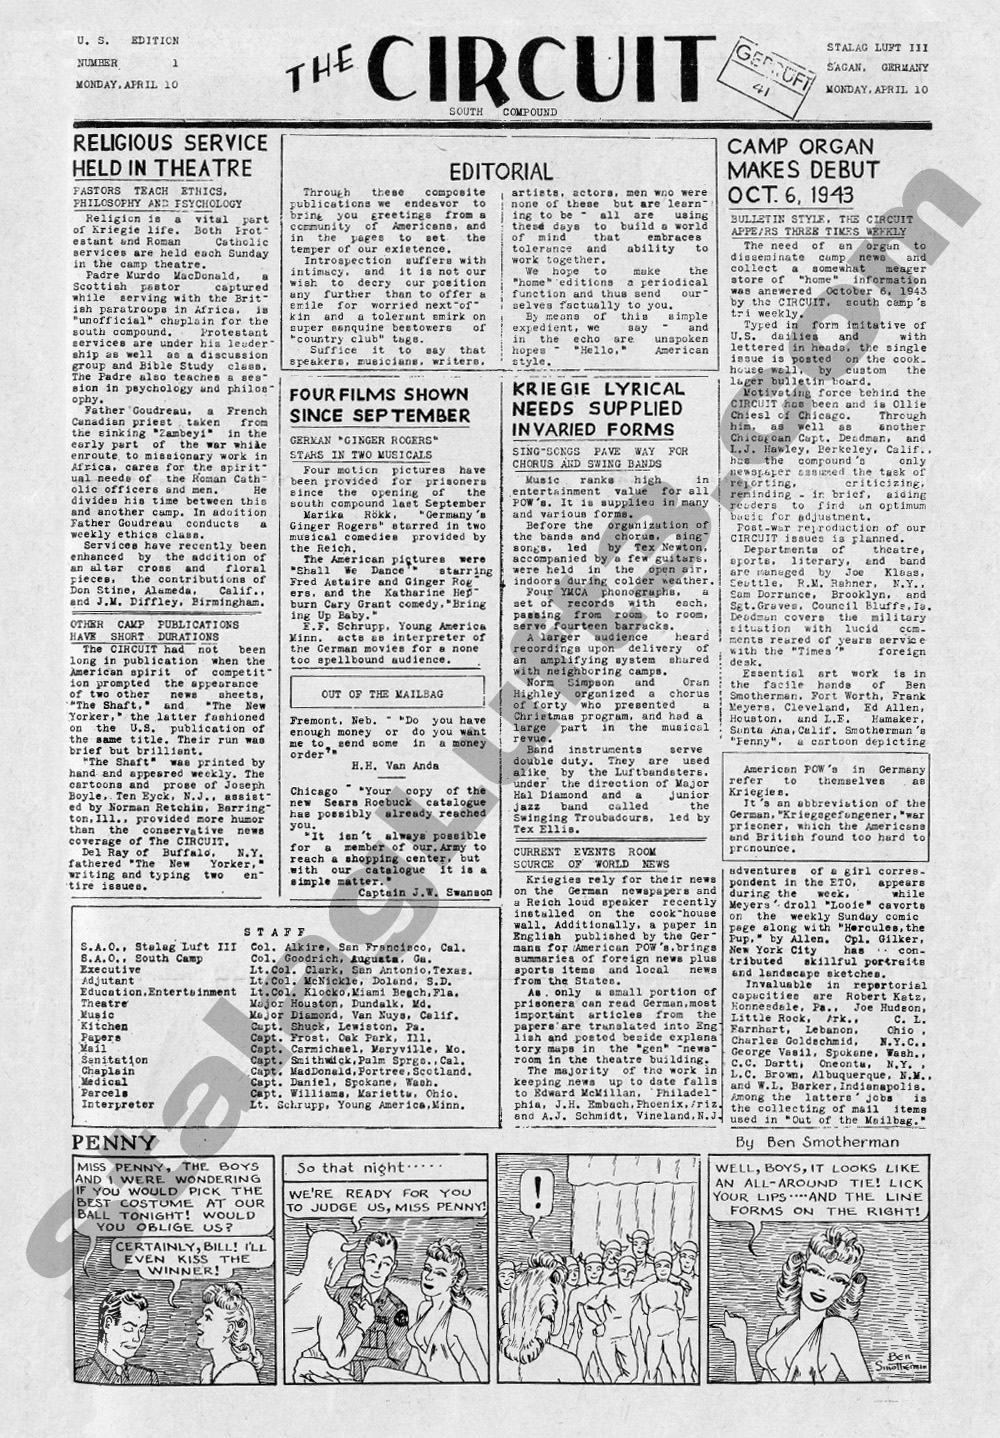 The Circuit POW Newspaper Published in Stalag Luft III